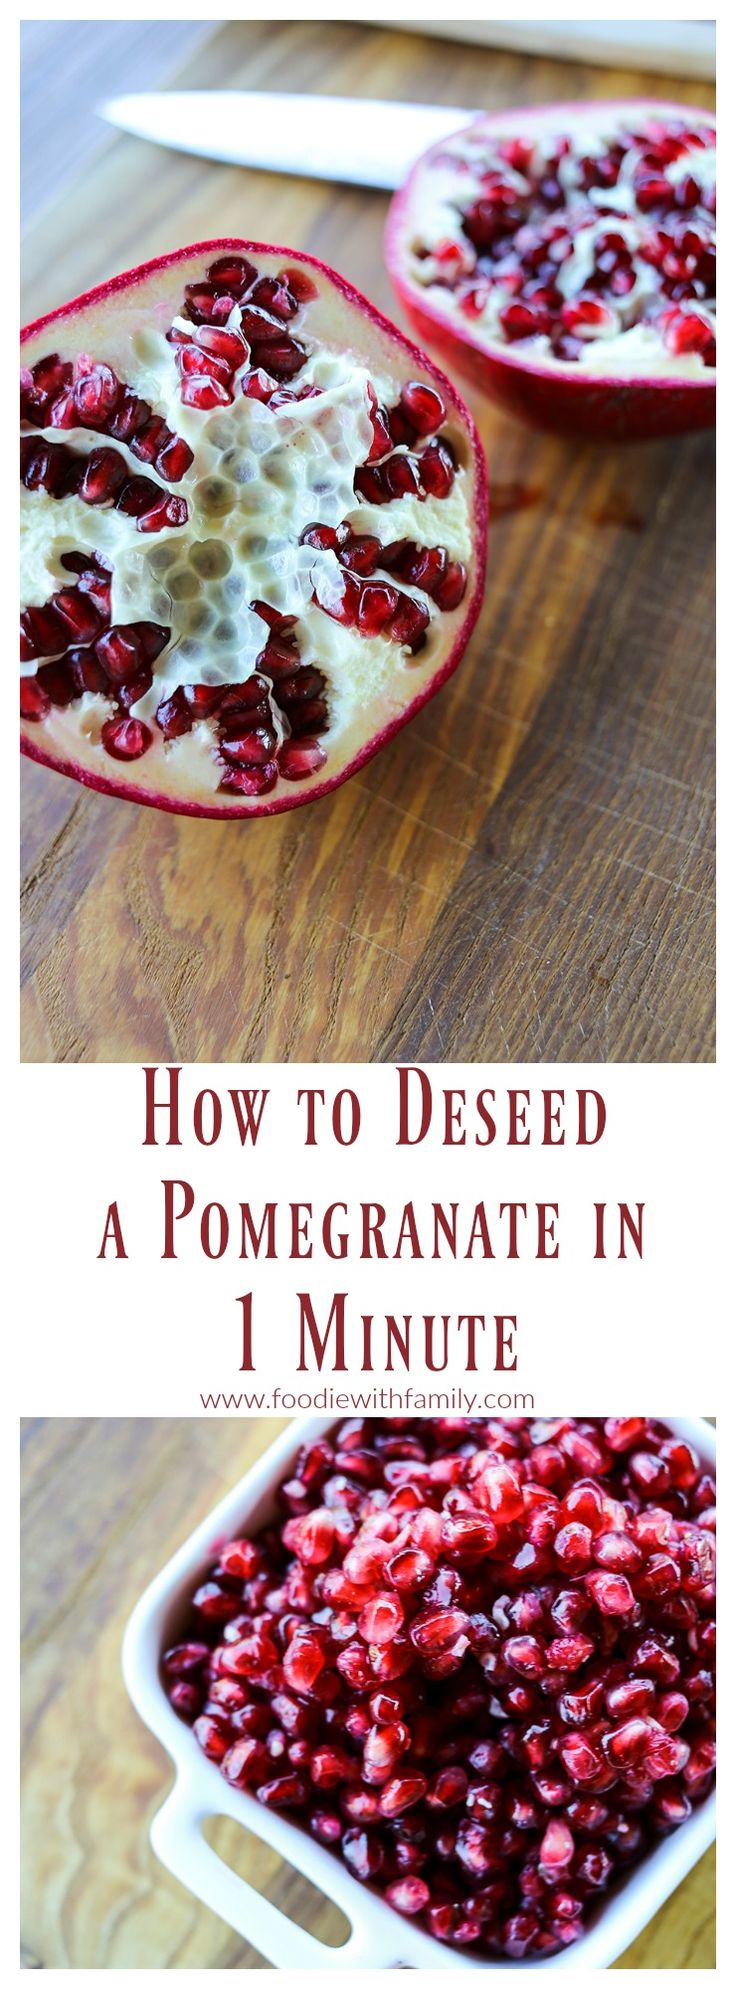 How to Deseed a Pomegranate in 1 Minute